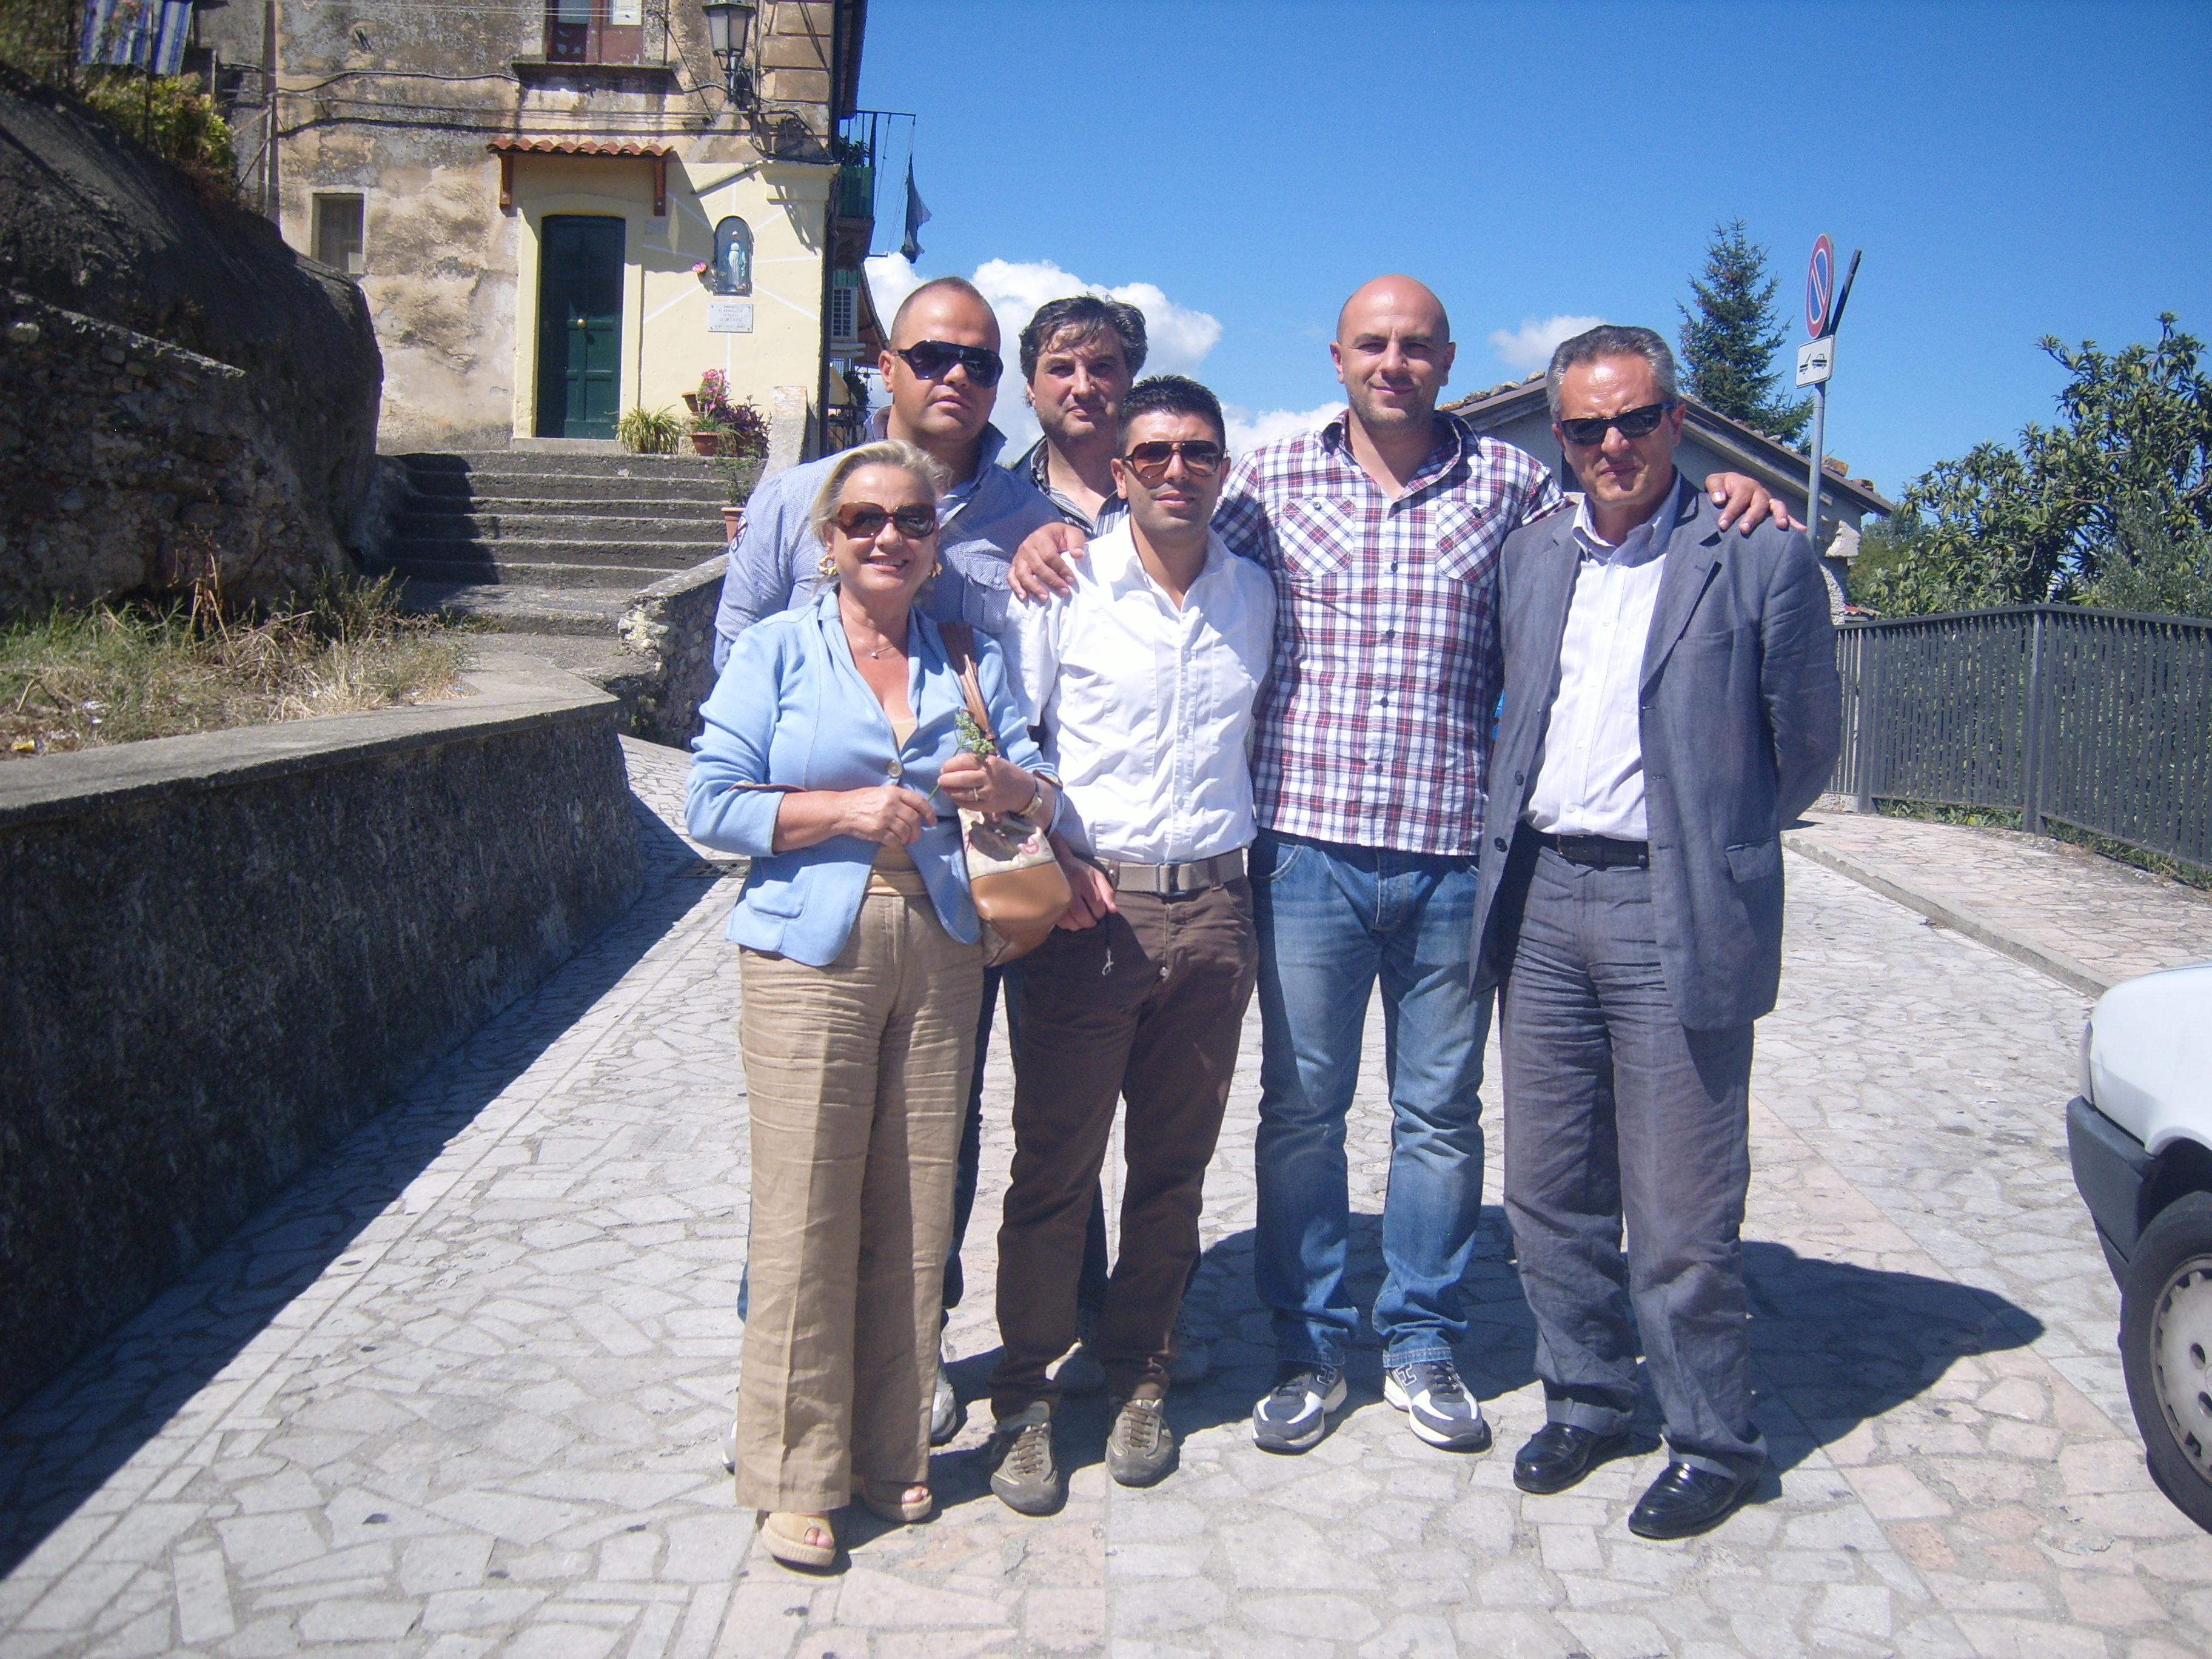 commissione ambiente a donnici